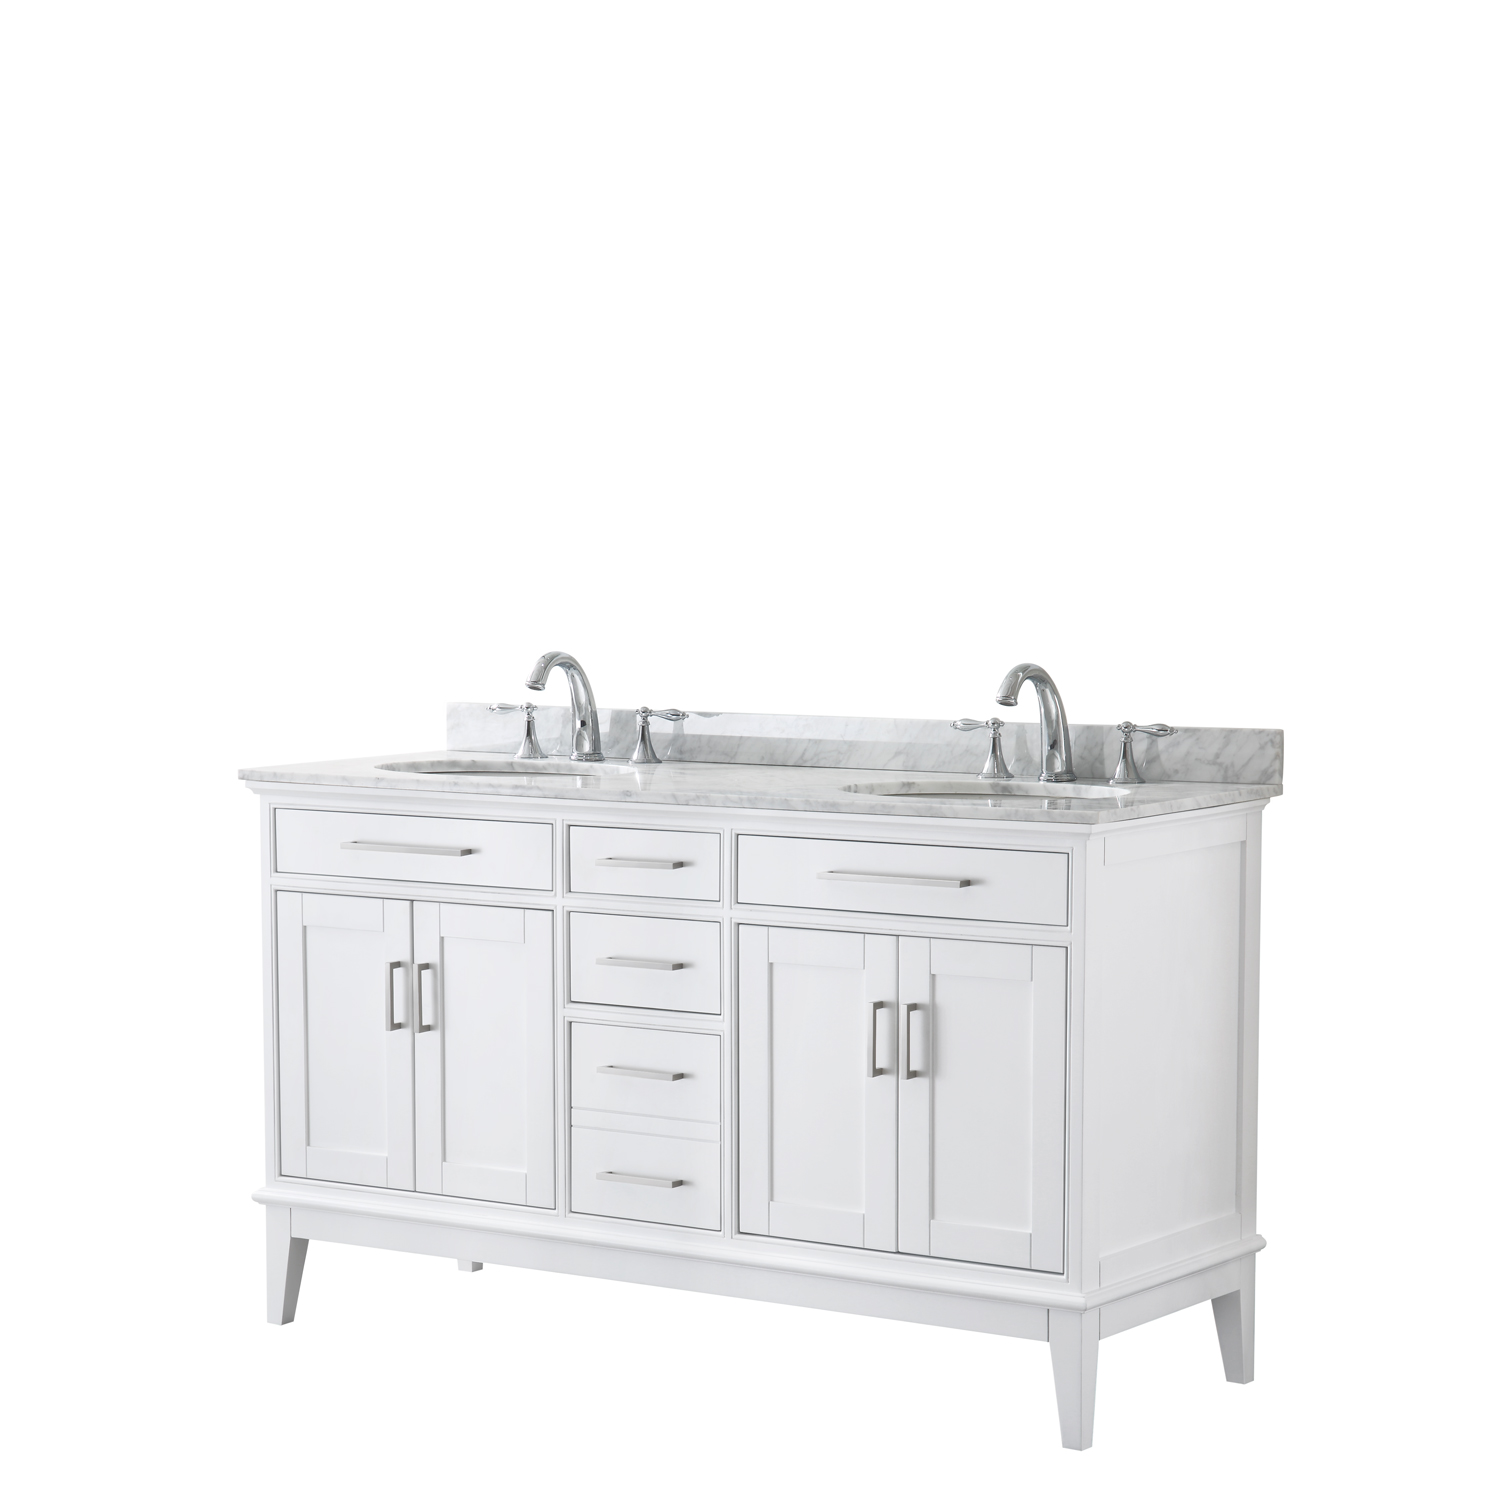 """Contemporary 60"""" Double Bathroom Vanity in White, White Carrara Marble Countertop with Undermount Sinks, and Mirror Options"""